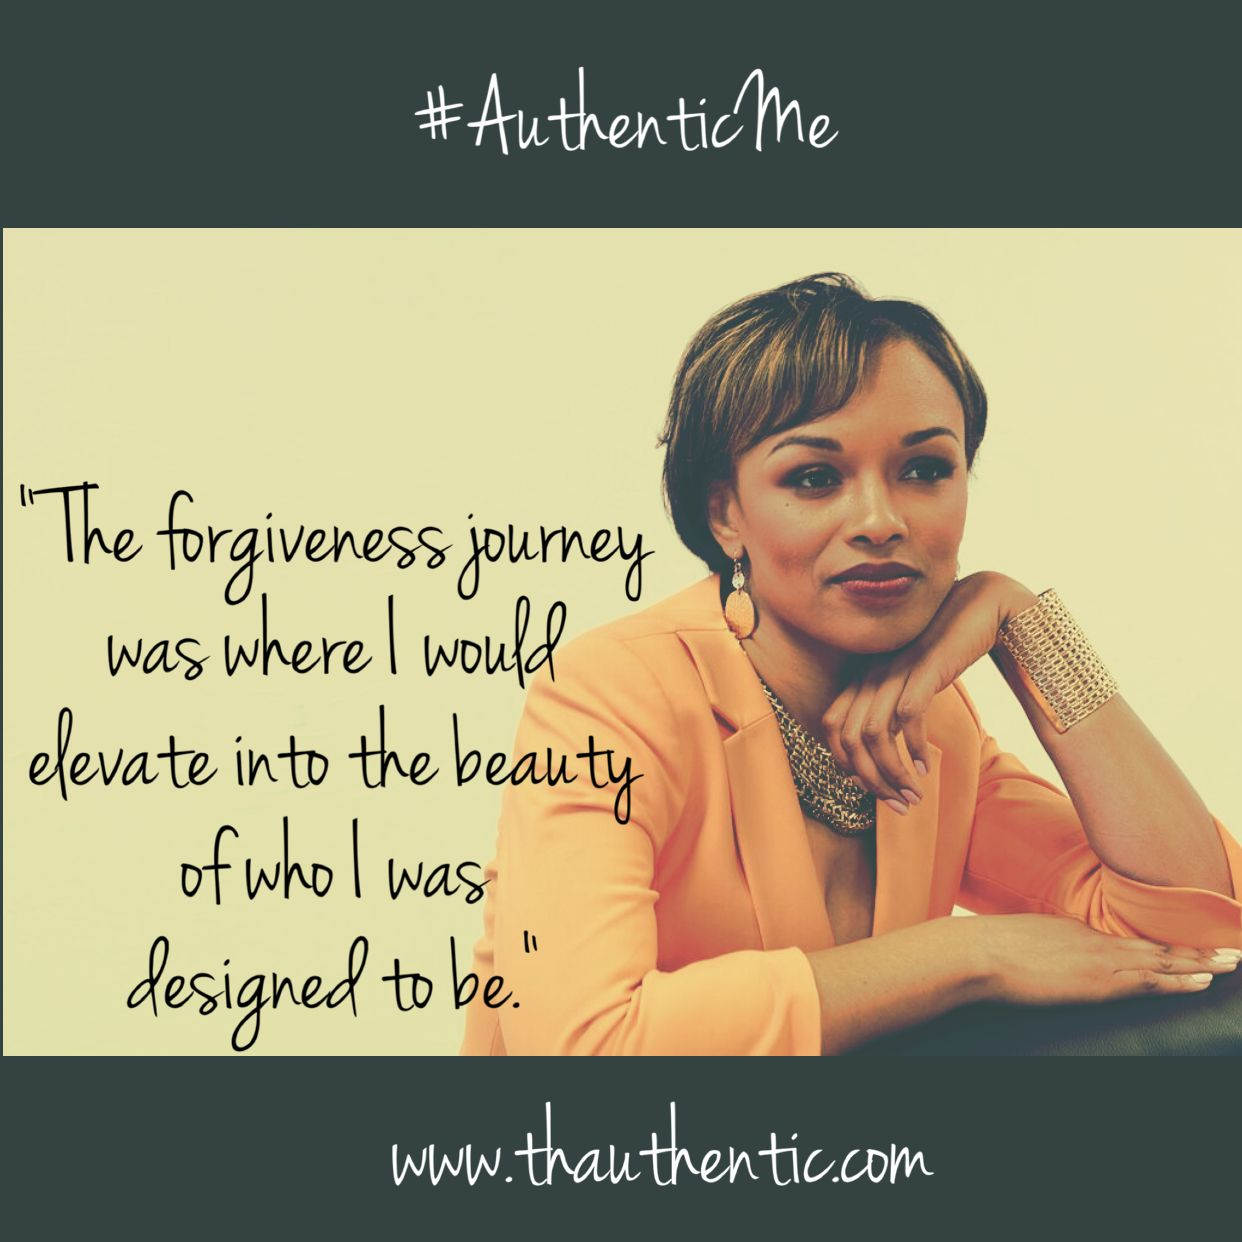 thauthentic.com #AuthenticMe